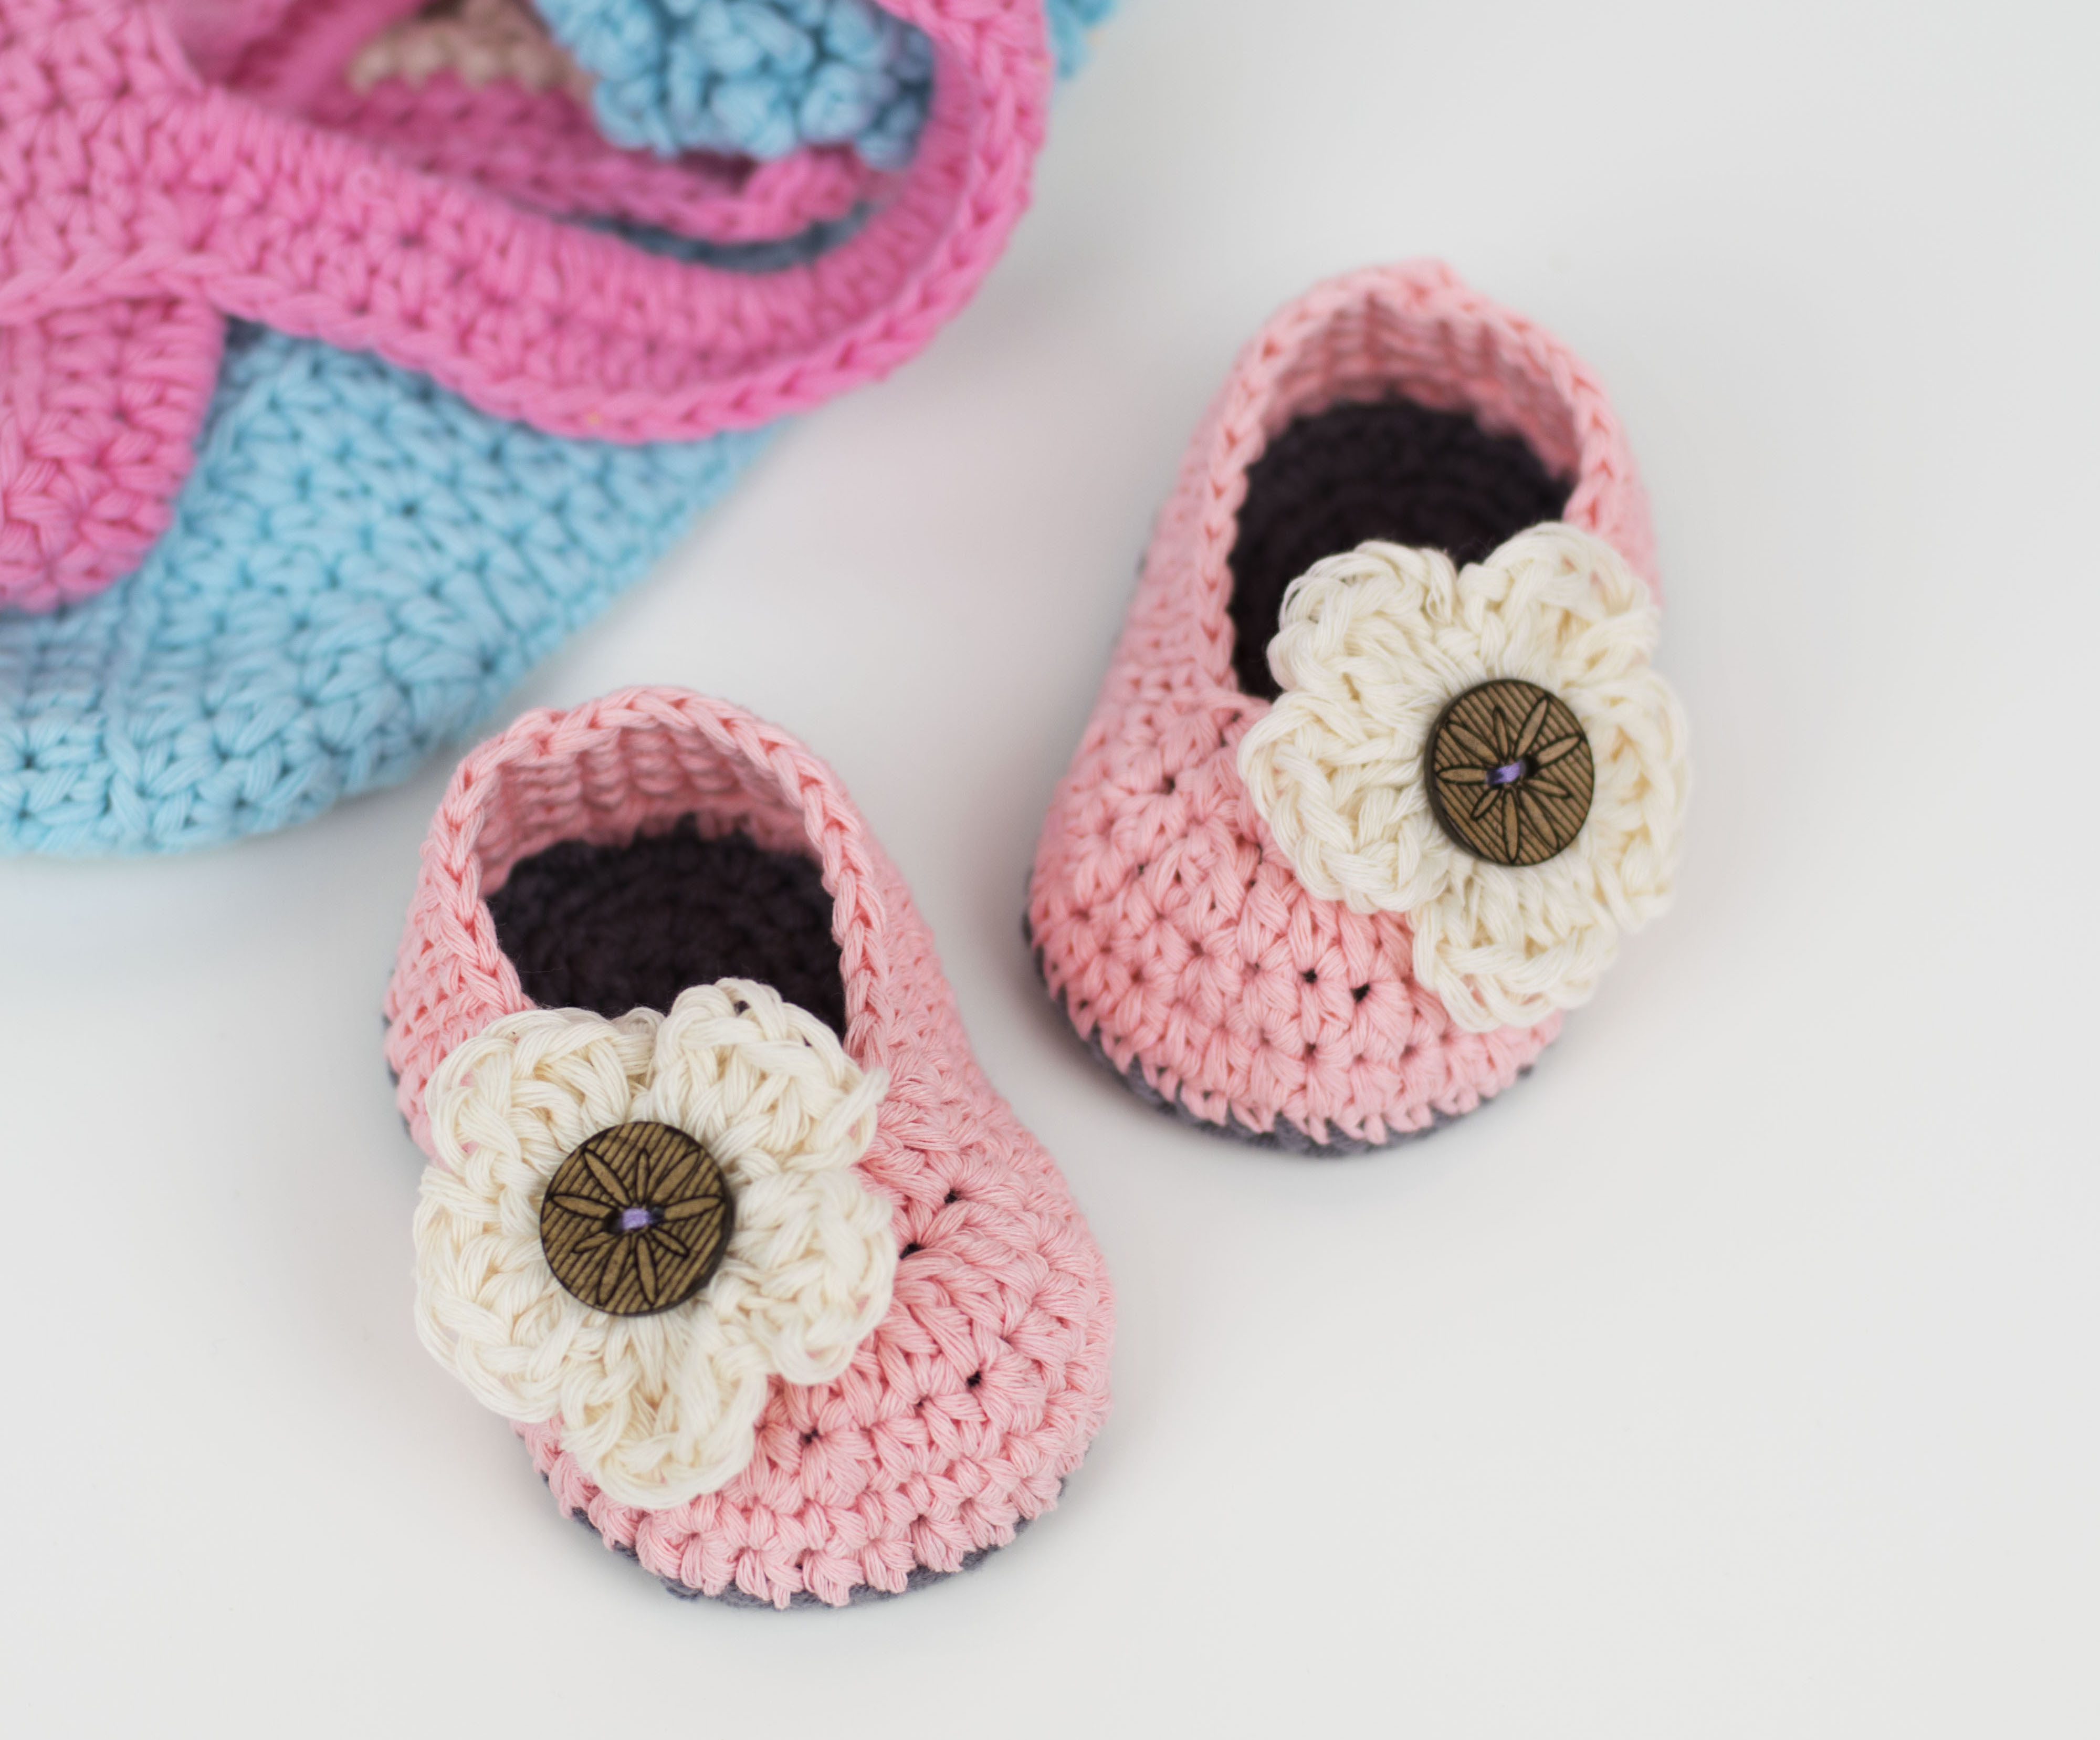 Free Crochet Baby Patterns Luxury Free Pattern Crochet Baby Booties with Flower – Croby Of Delightful 49 Ideas Free Crochet Baby Patterns